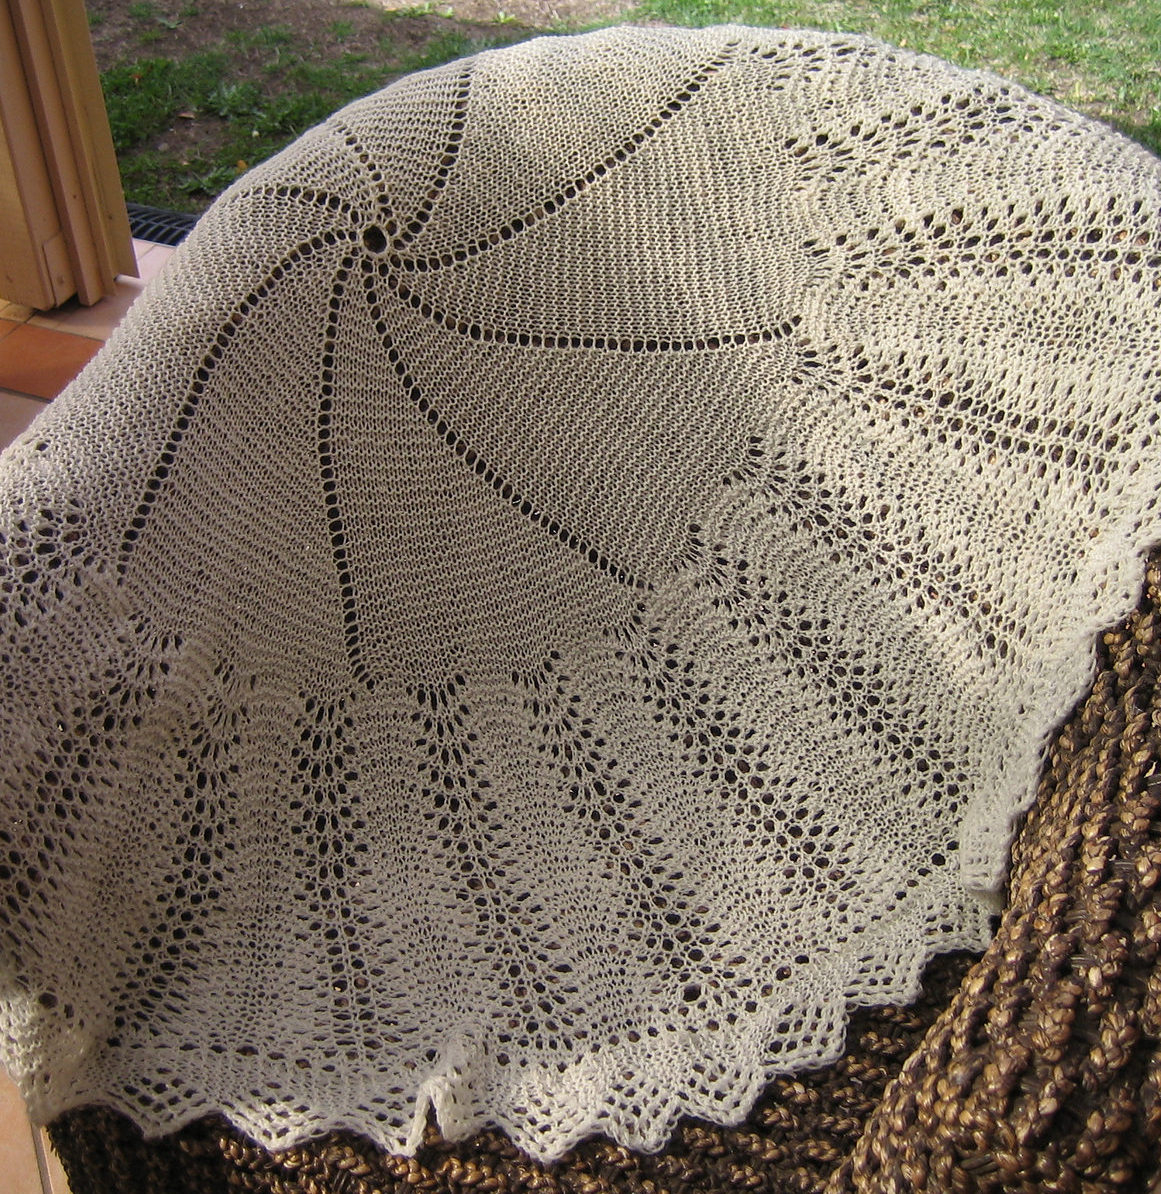 Knitting Afghan Patterns Free Afghan In The Round Knitting Patterns In The Loop Knitting